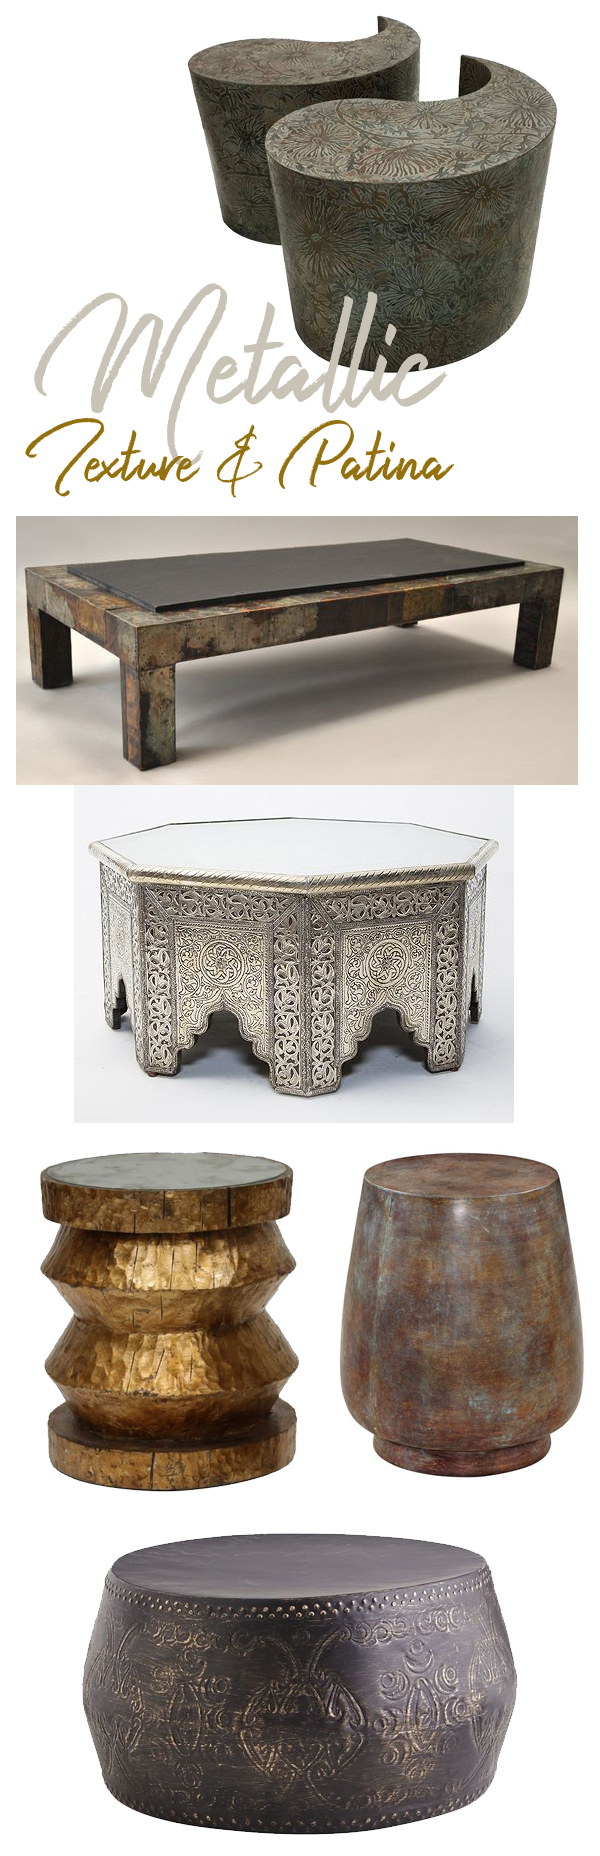 Metallic Texture and Patina Coffee Tables